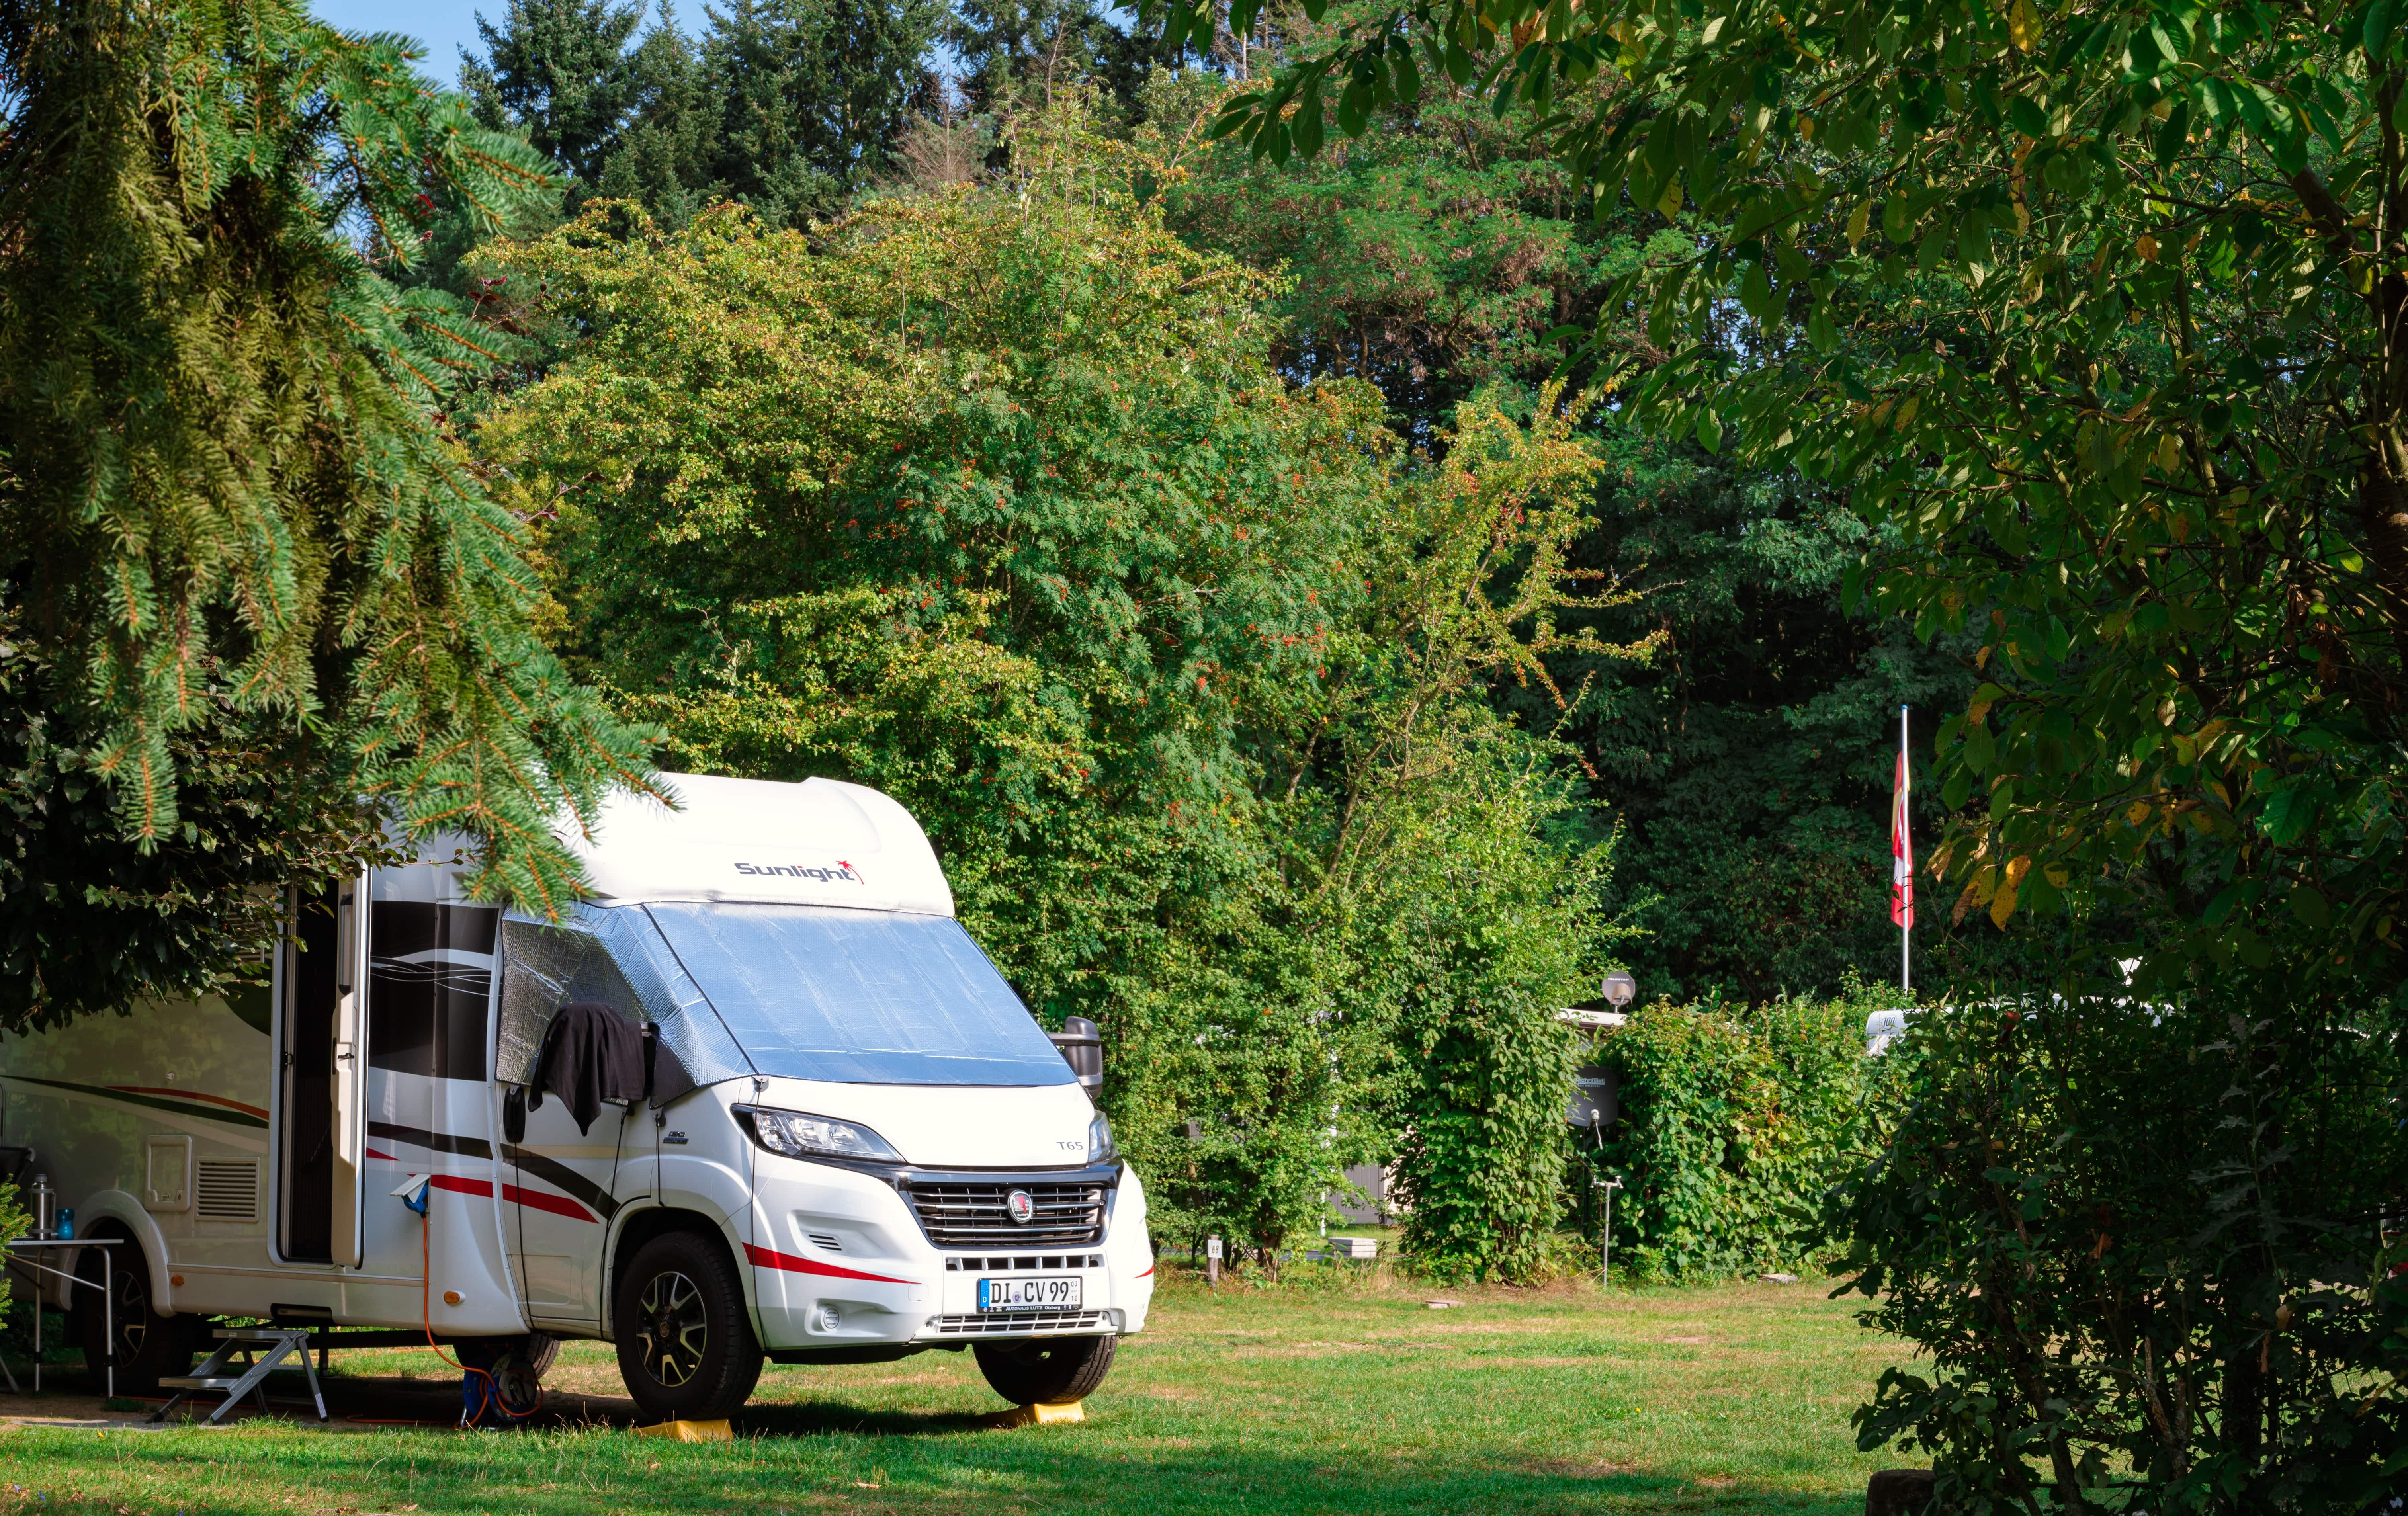 Emplacement - Emplacement Caravane / Camping-Car /  Tente, Voiture - Nibelungen-Camping am Schwimmbad